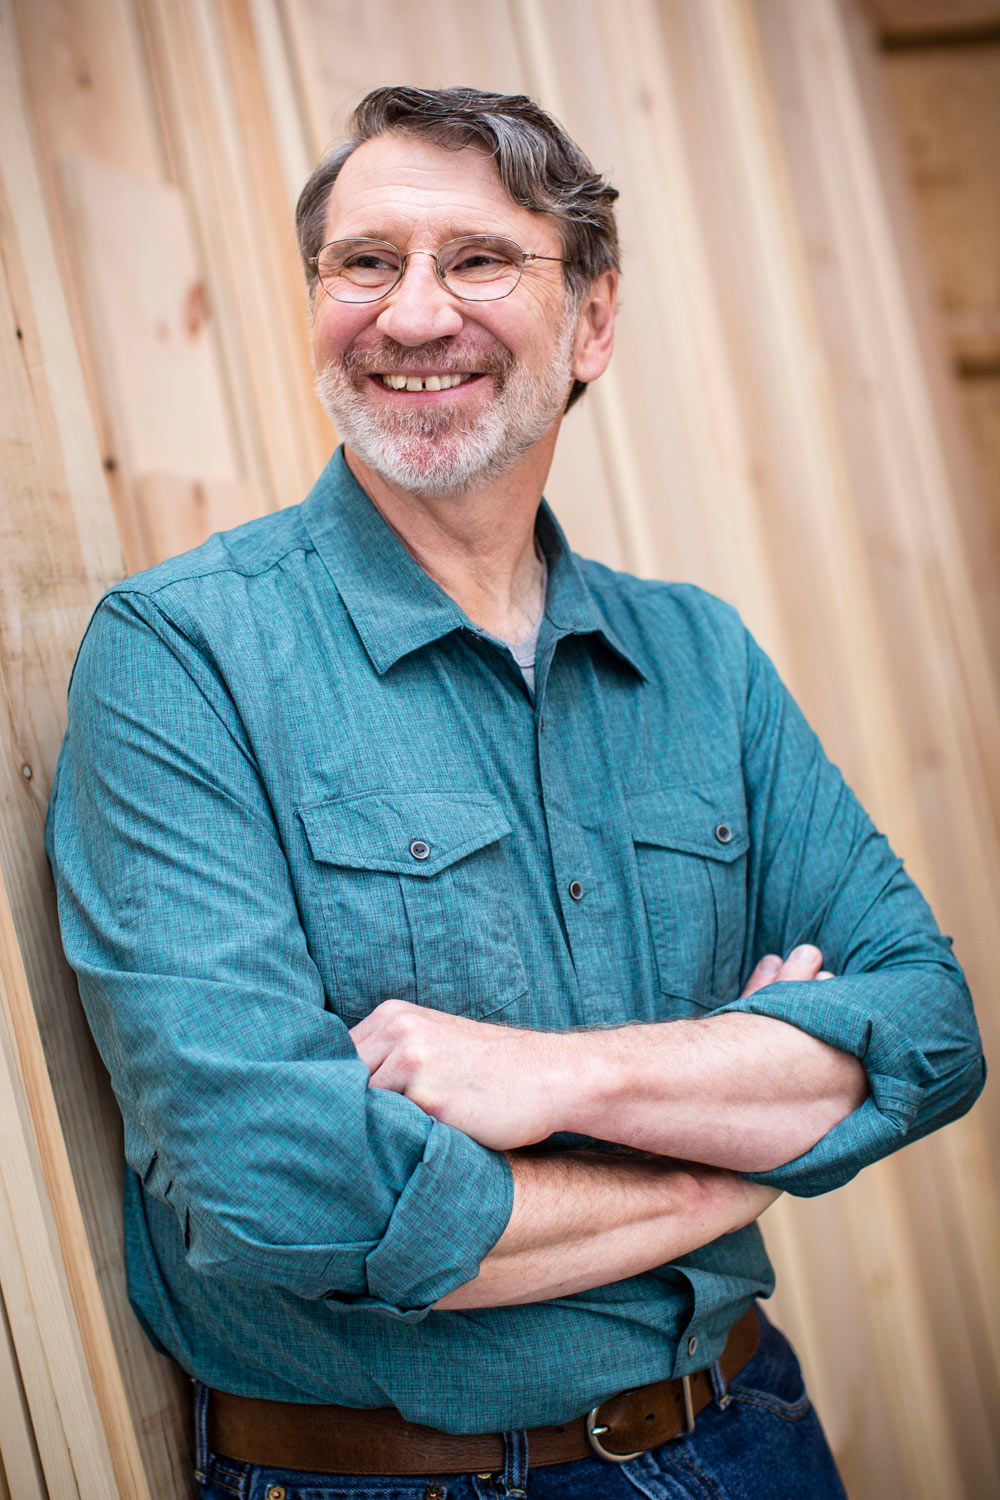 Ep. 28: Norm Abram — Clever: A Podcast About Design